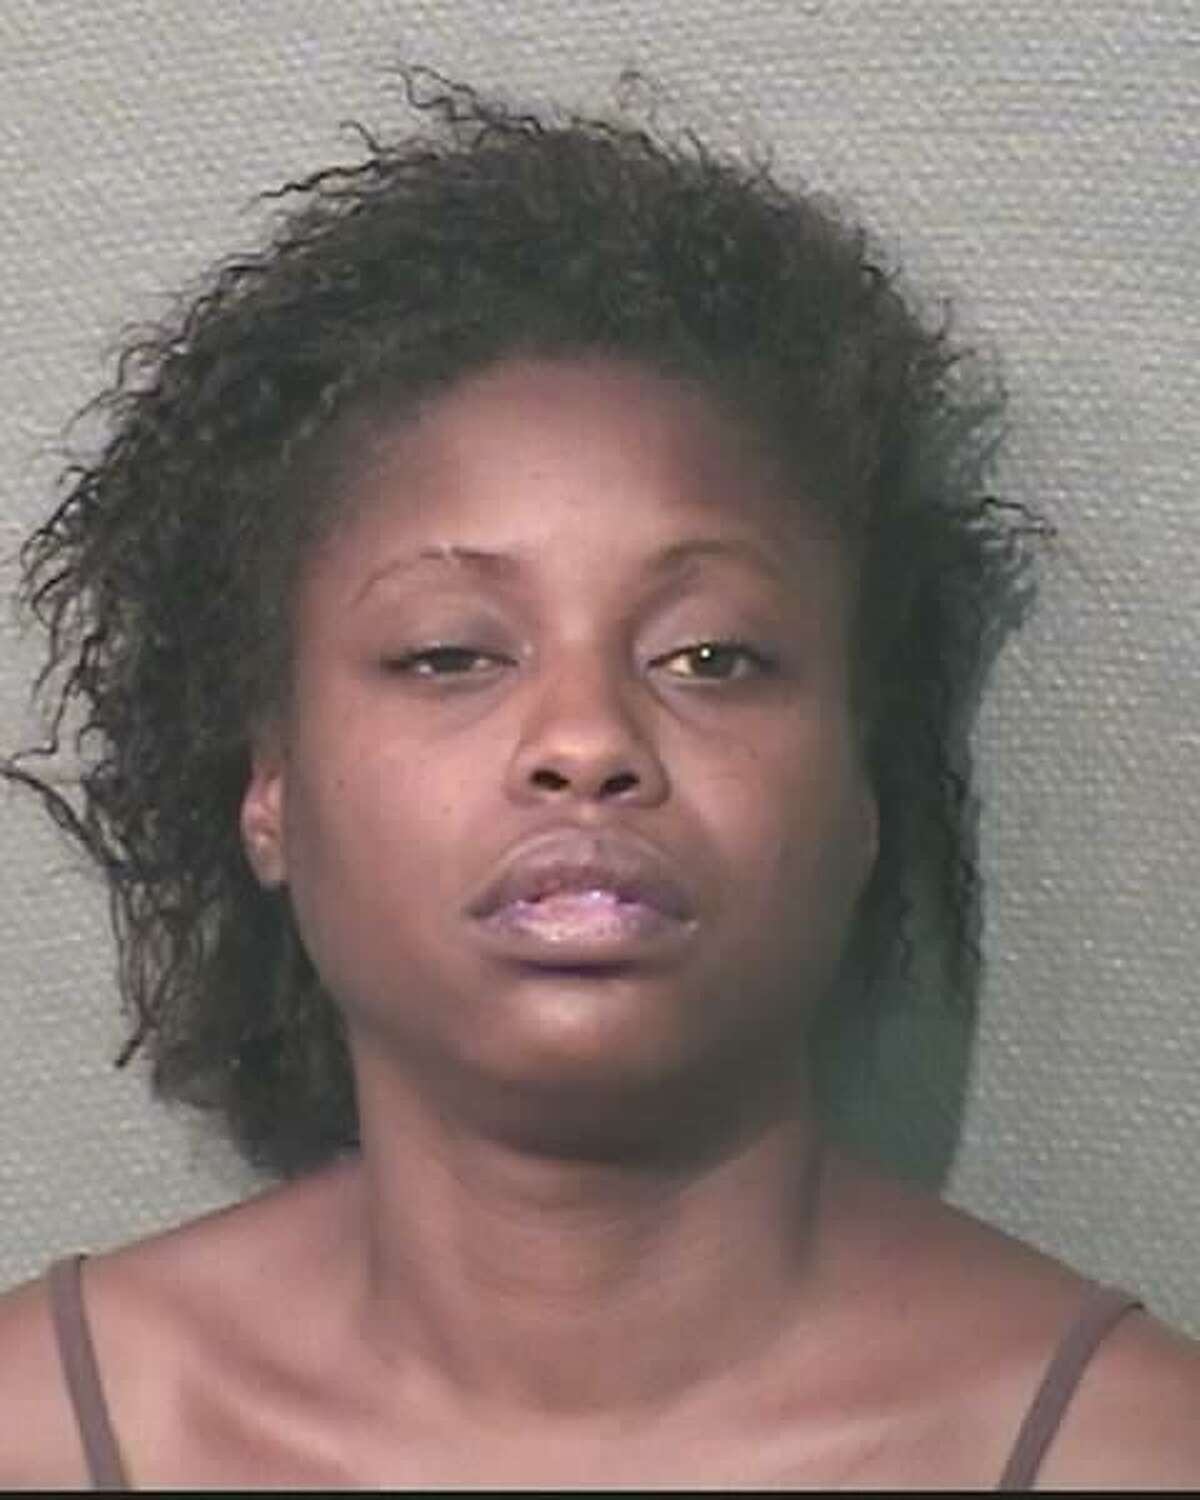 Patience Wilkins of Houston is wanted by the Houston Police Department on a charge of aggravated assault with a deadly weapon. Her warrant is active as of Wednesday.